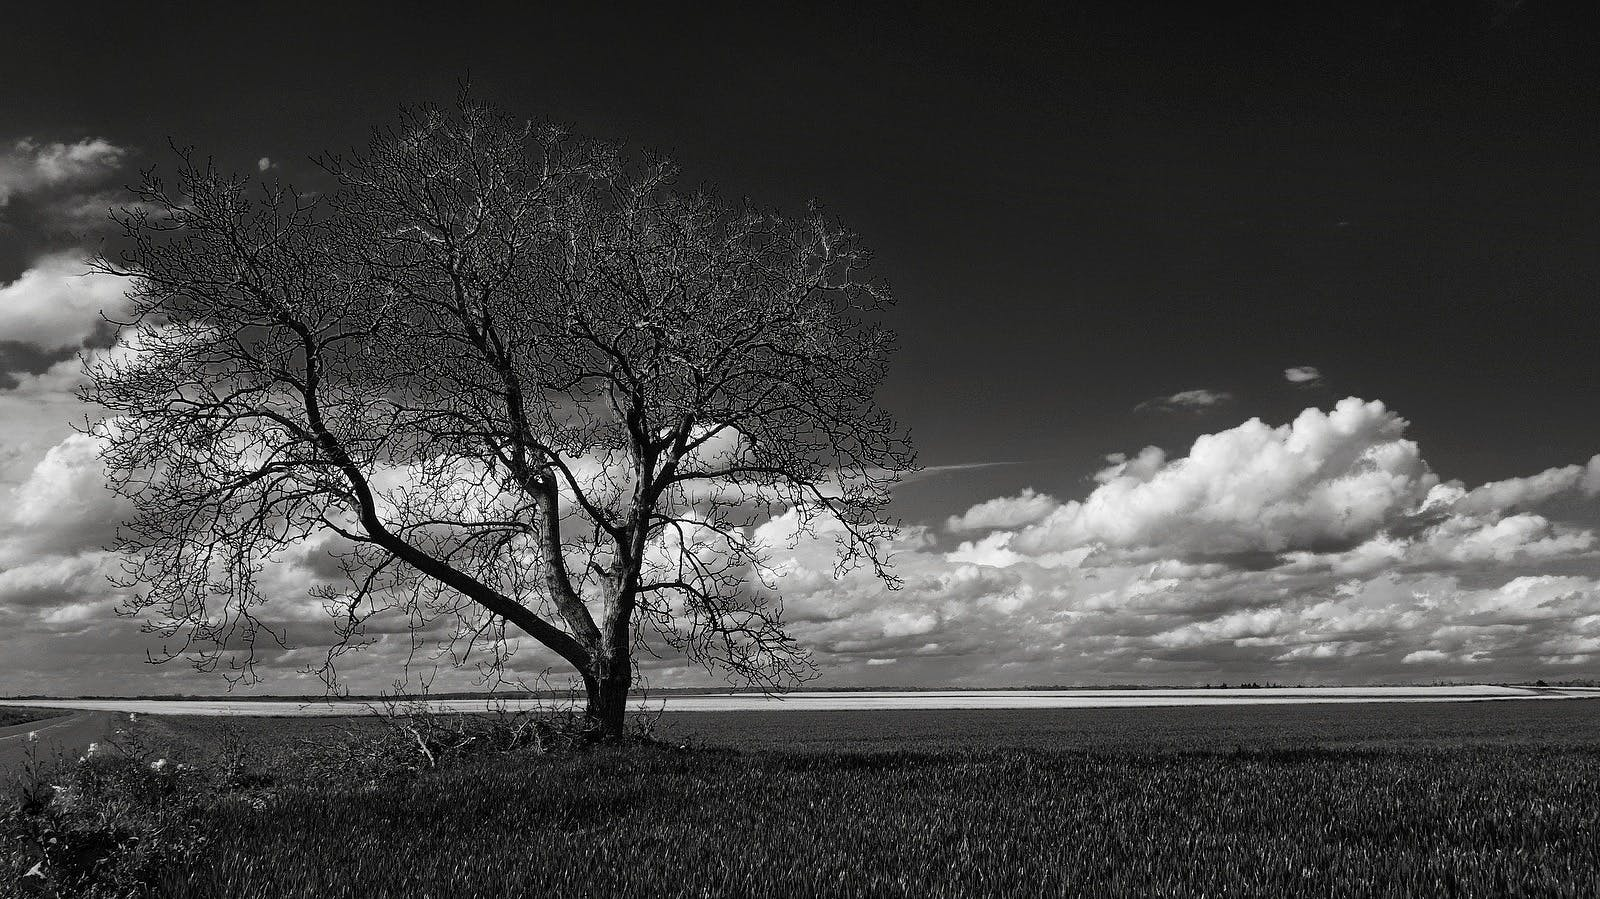 Gray Scale Photo of Leafless Tree Under Cloudy Sky